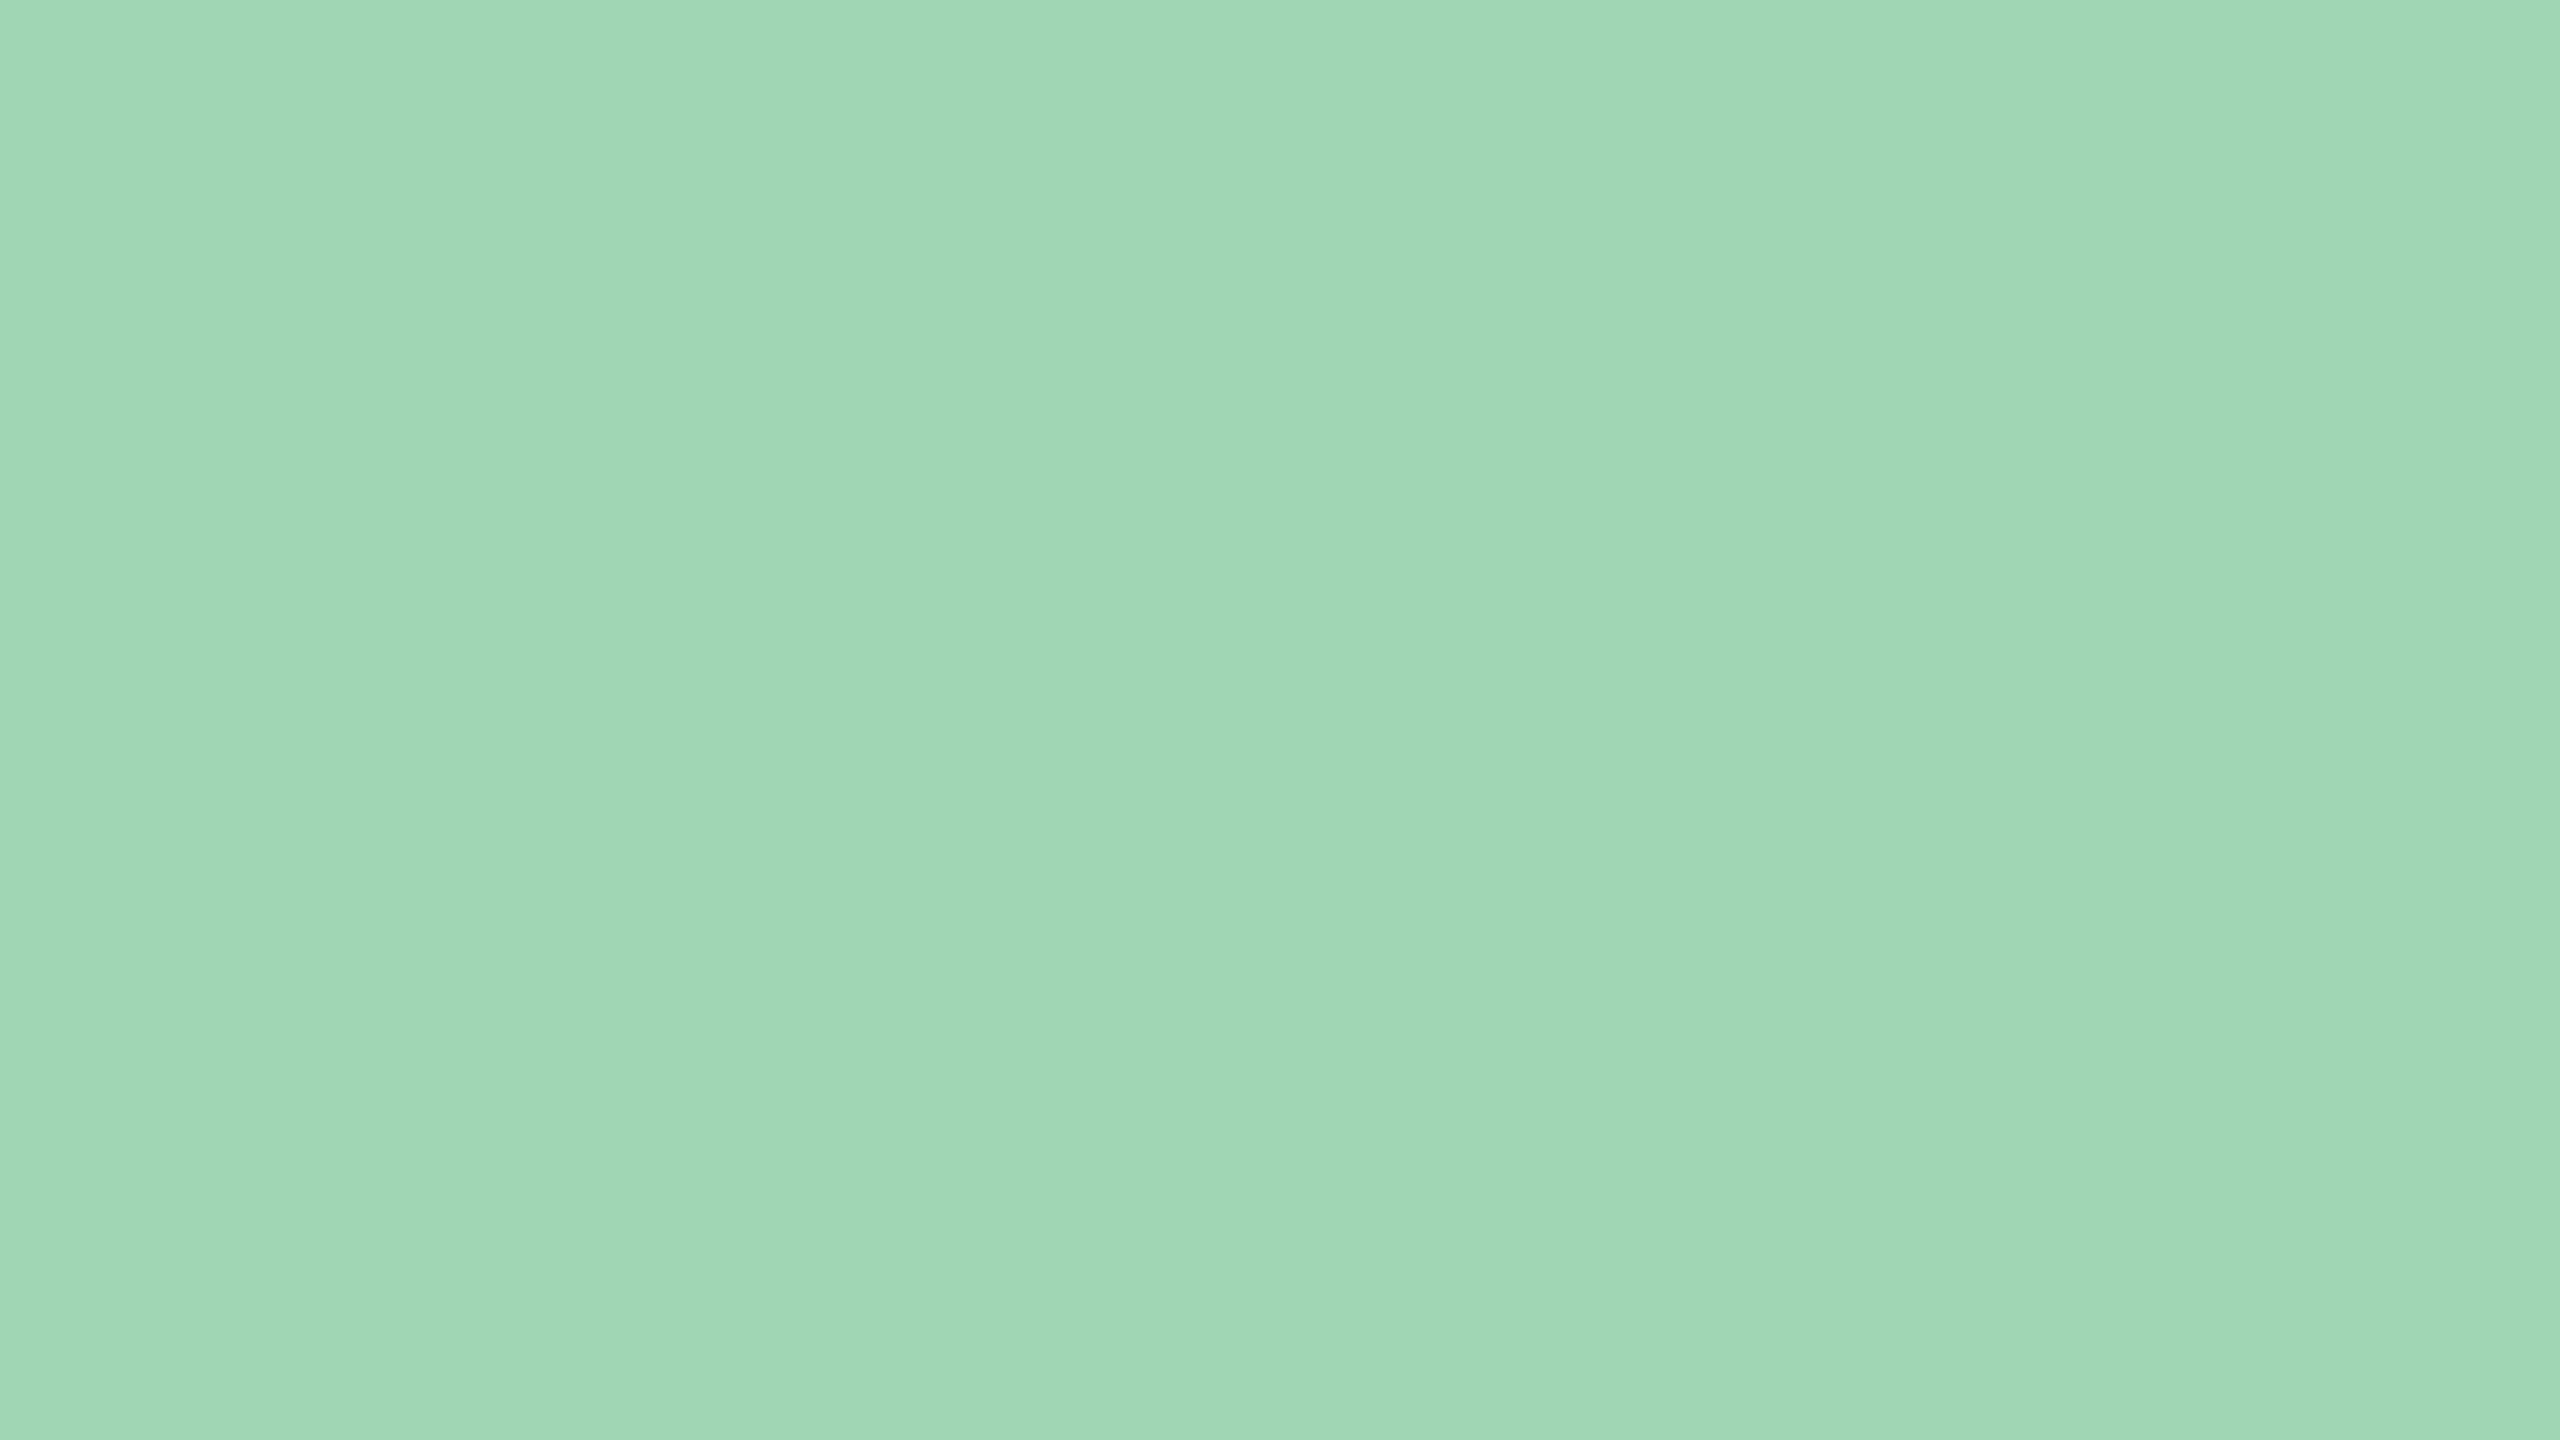 2560x1440 - Solid Green 23